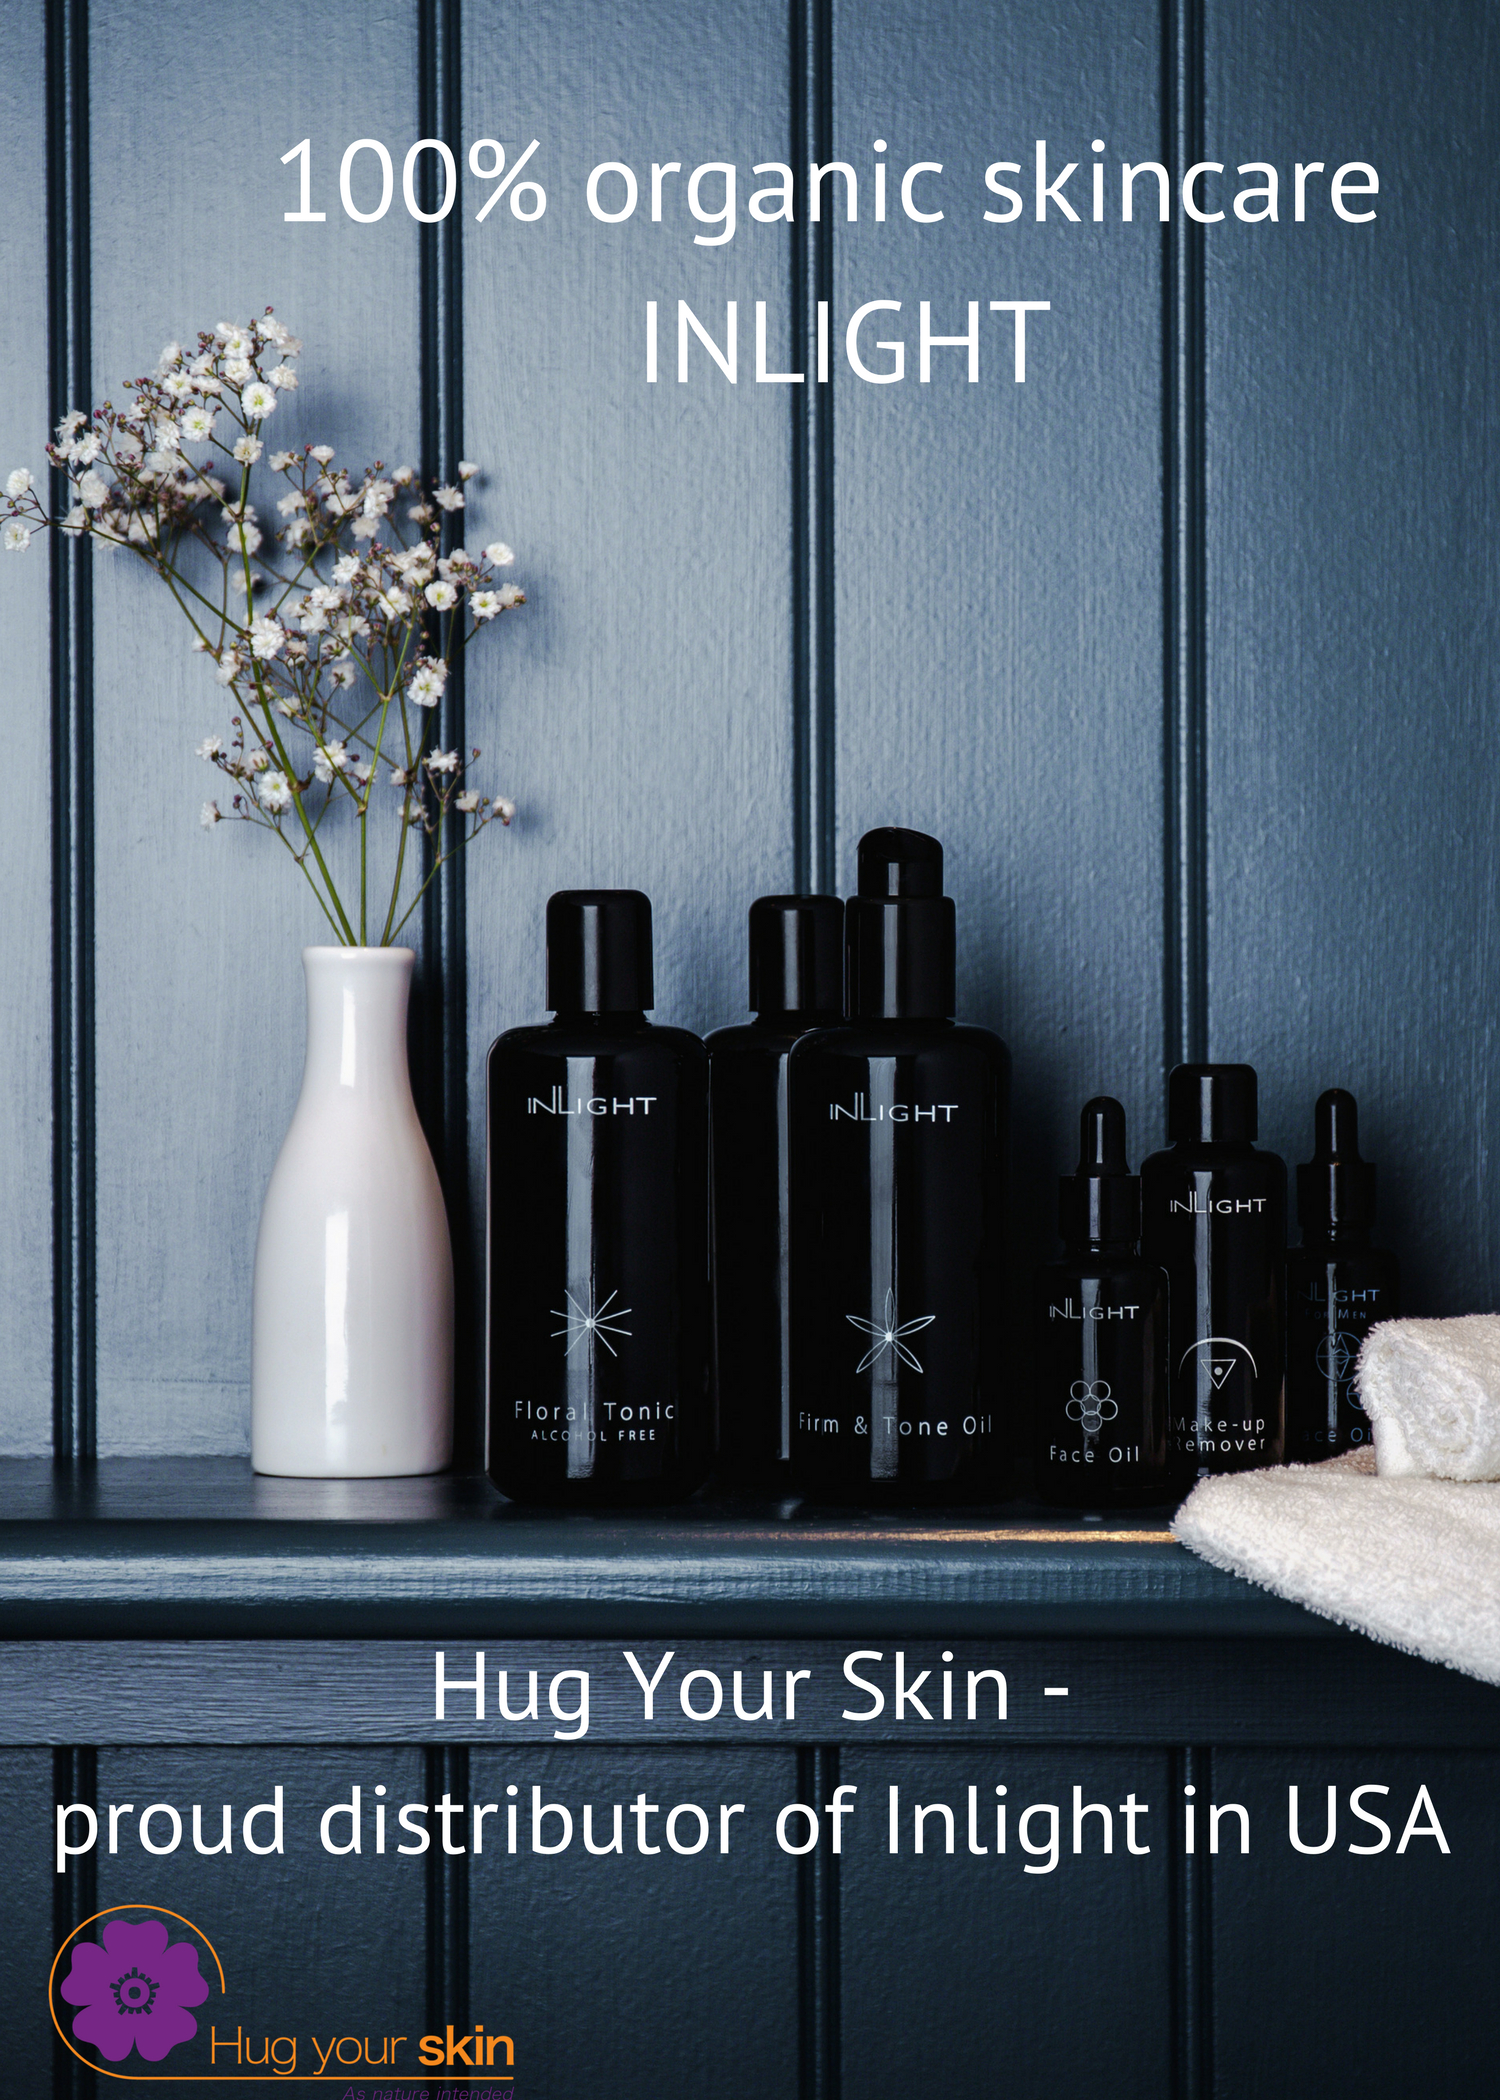 Proudly distributing InLight organic Skincare in USA and